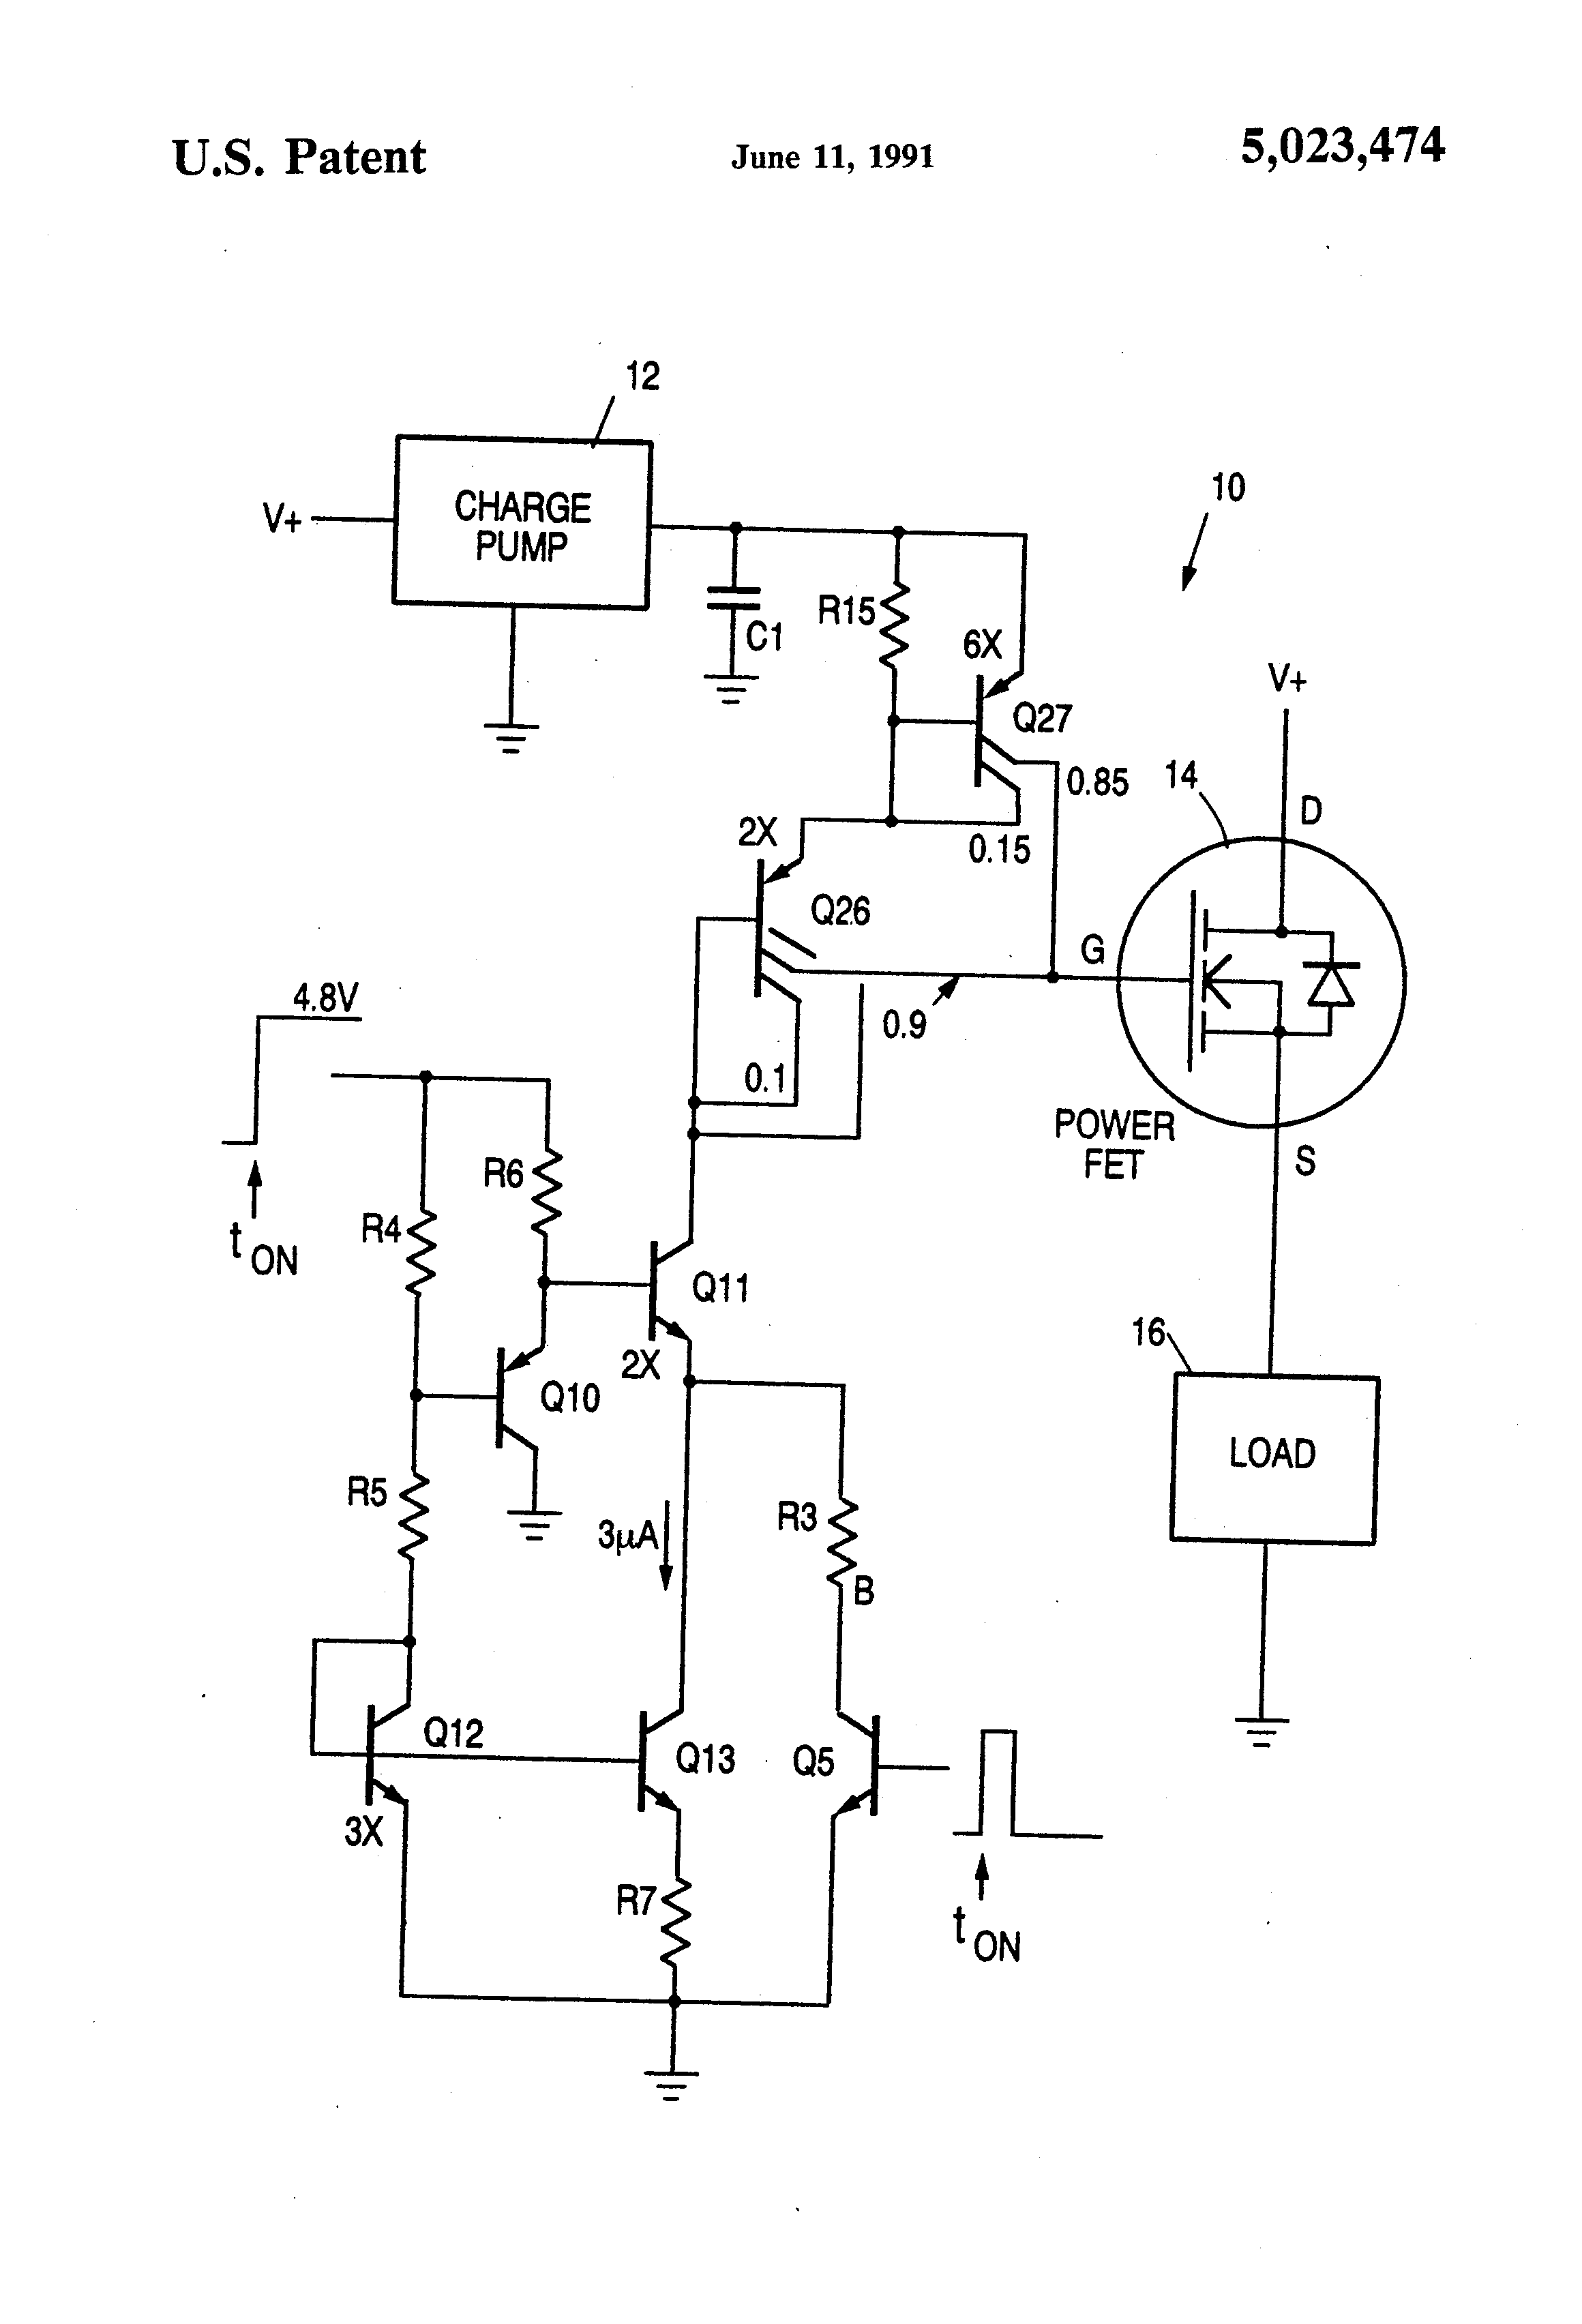 Patent Us5023474 Adaptive Gate Charge Circuit For Power Fets Micropower Linear Voltage Regulator In The Battery Charger Drawing